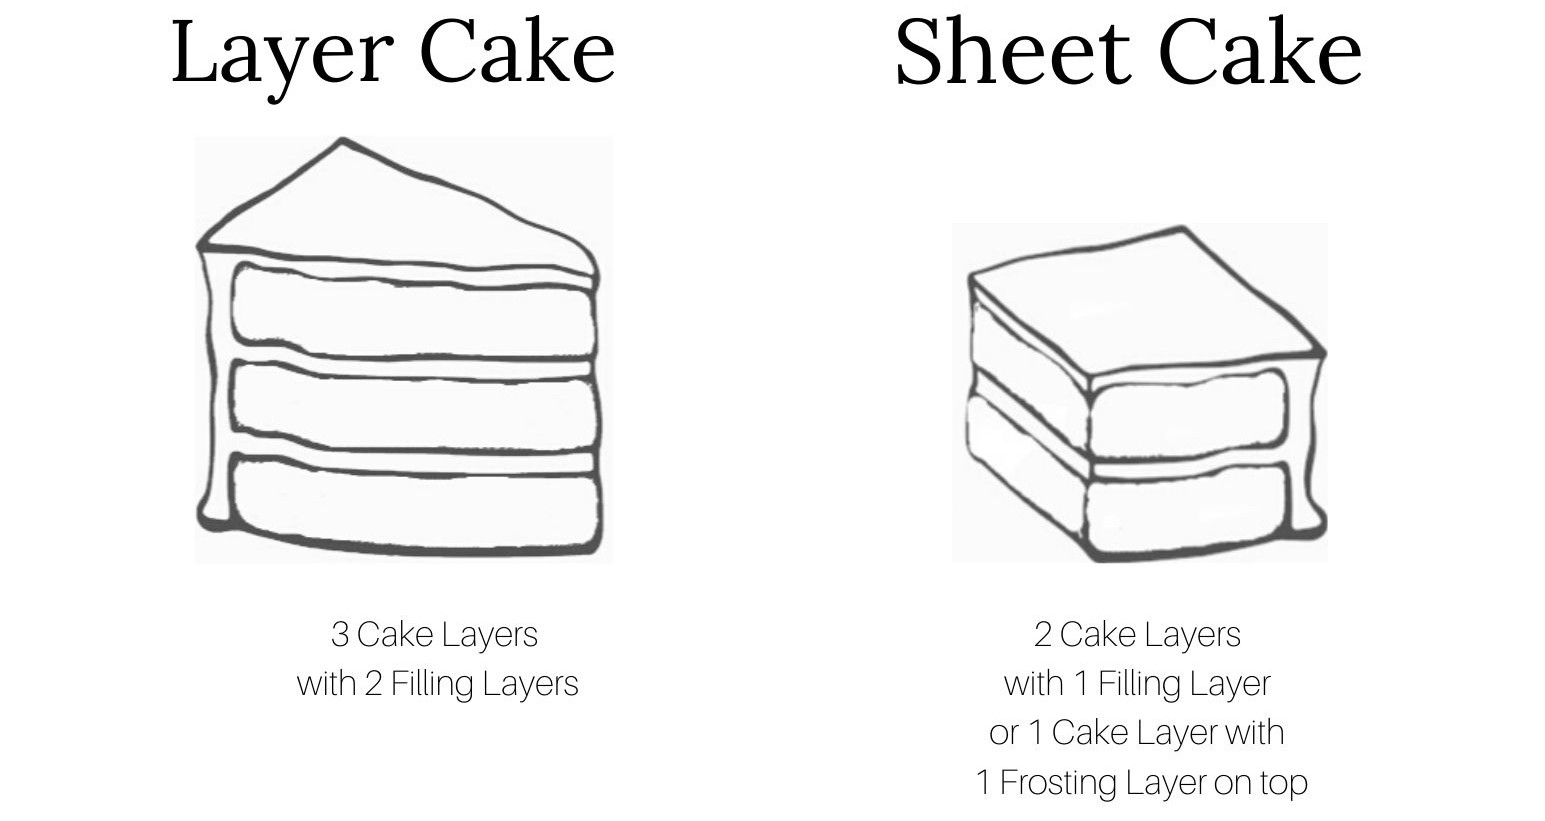 Here's how to get clean and beautiful cake slices! In this post, you'll learn how to complete the cake decorating process by cutting and serving your beautiful cakes. Since this is such an important piece to cake decorating, I have created a training guide so you will learn how to make perfect slices for any occasion. #xokatierosario #howtocutcake #cutcakeswedding #cakedecoratingtips